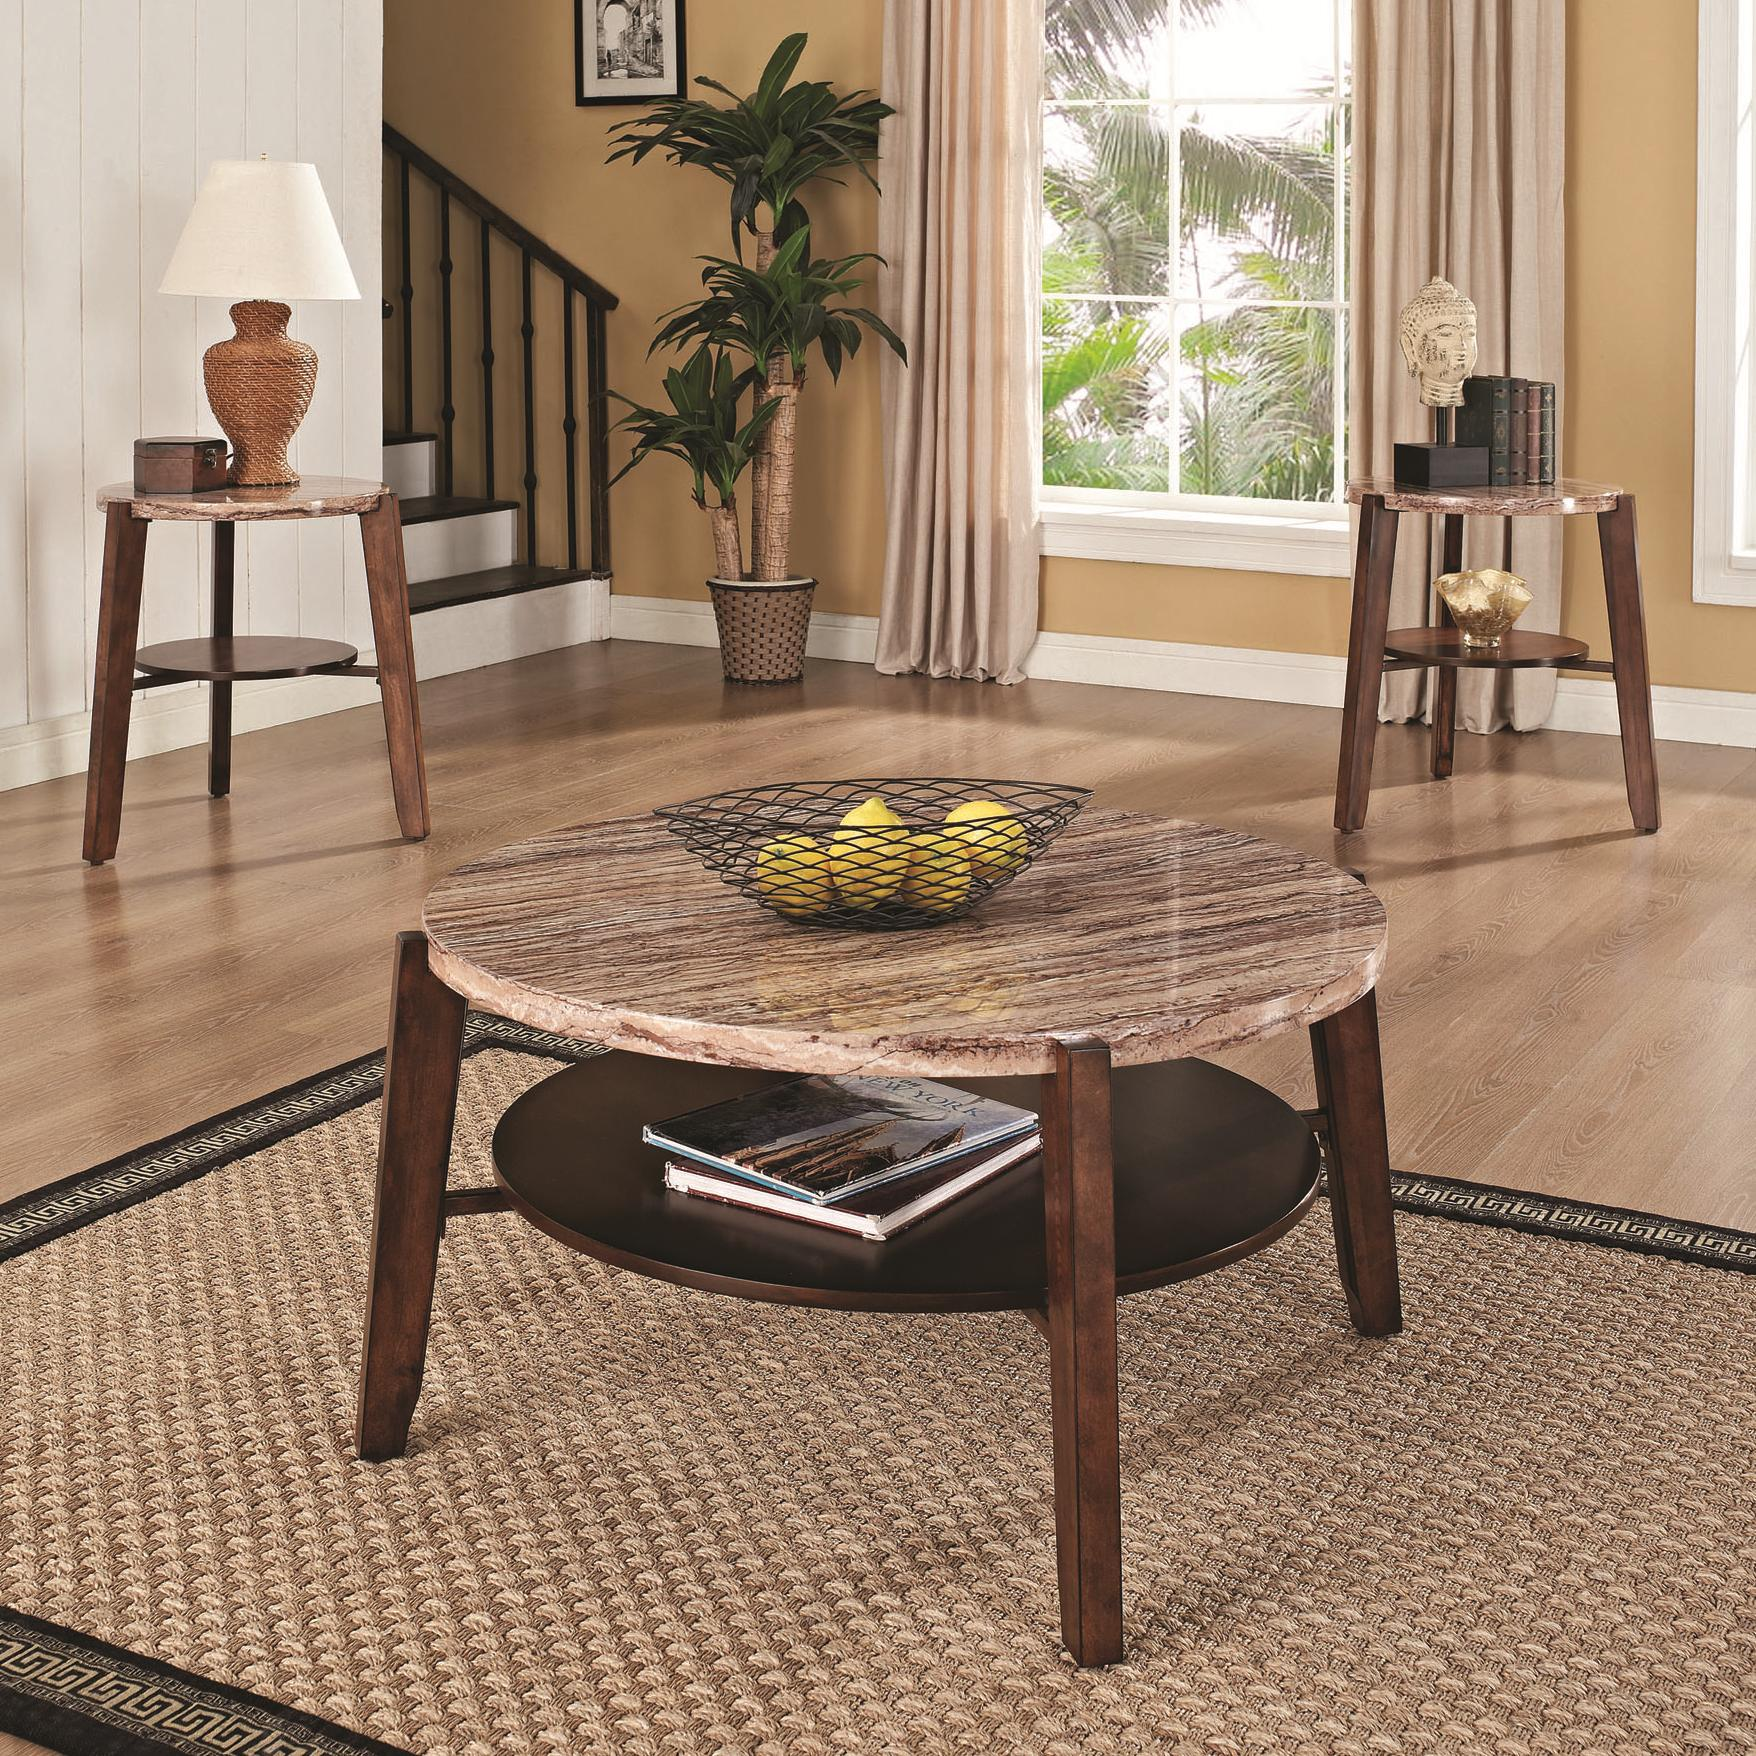 Acme Furniture Nadav Round Faux Marble 3-Piece Coffee/End Table - Item Number: 80083